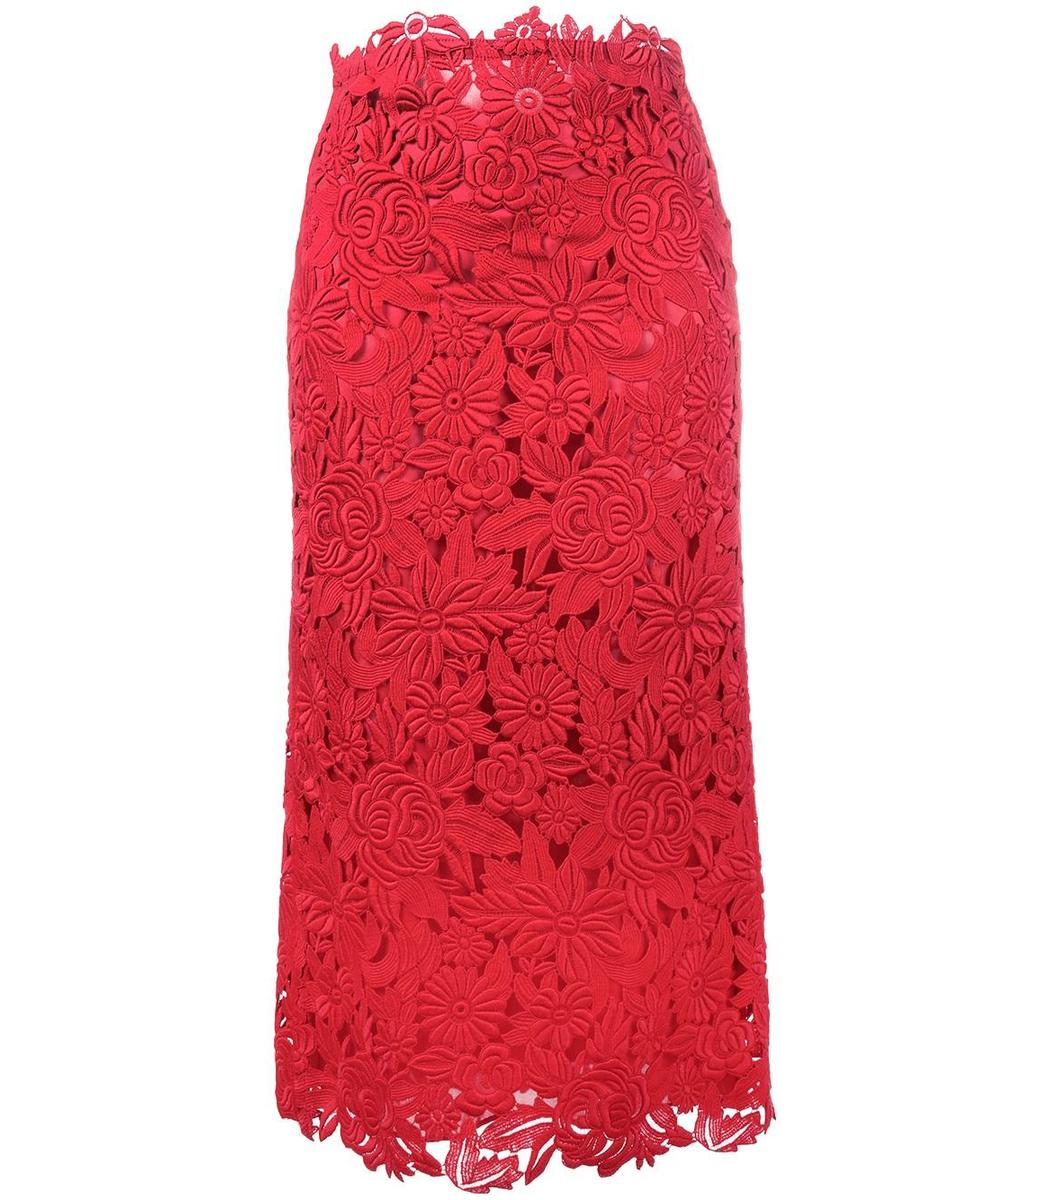 Valentino Floral Lace Skirt - Red Scalloped Hem Skirt